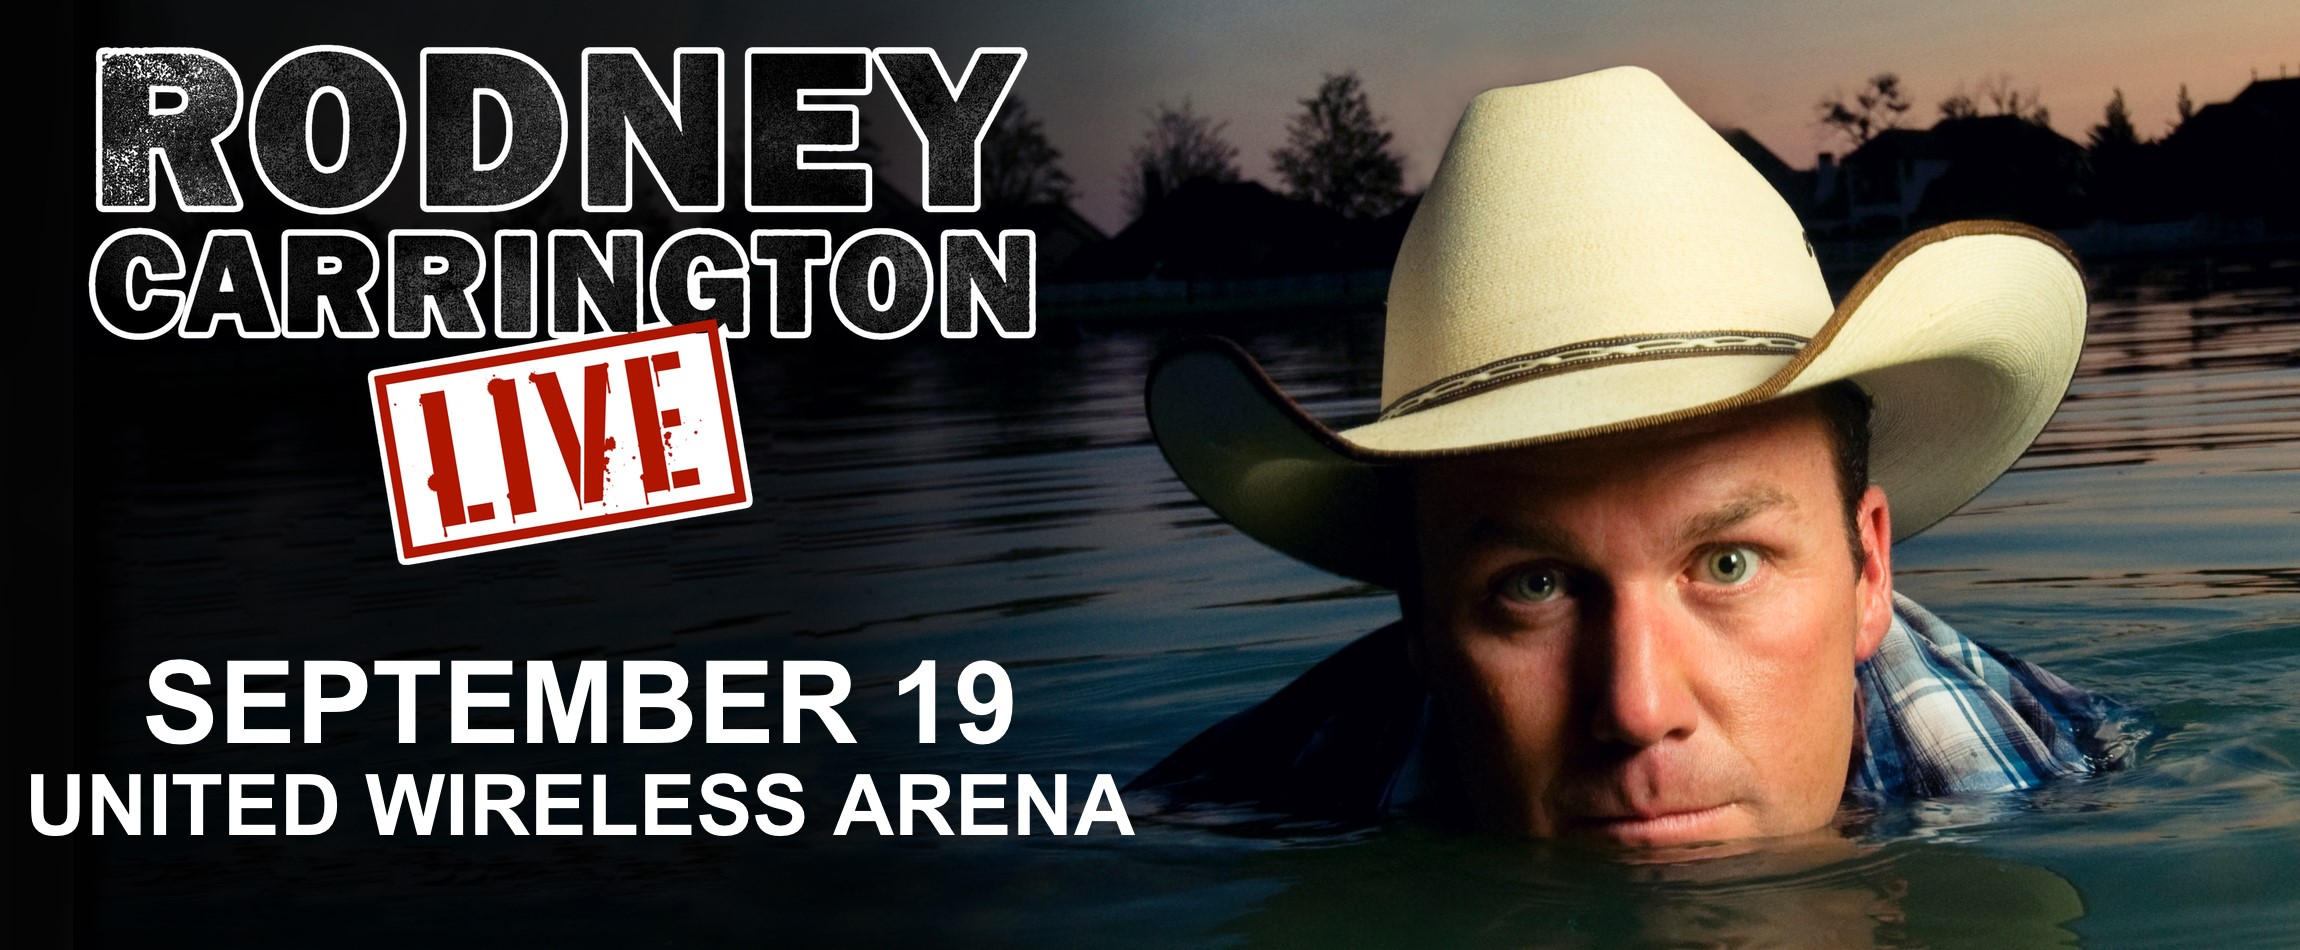 United Wireless Arena - Rodney Carrington Live 2019_09_19